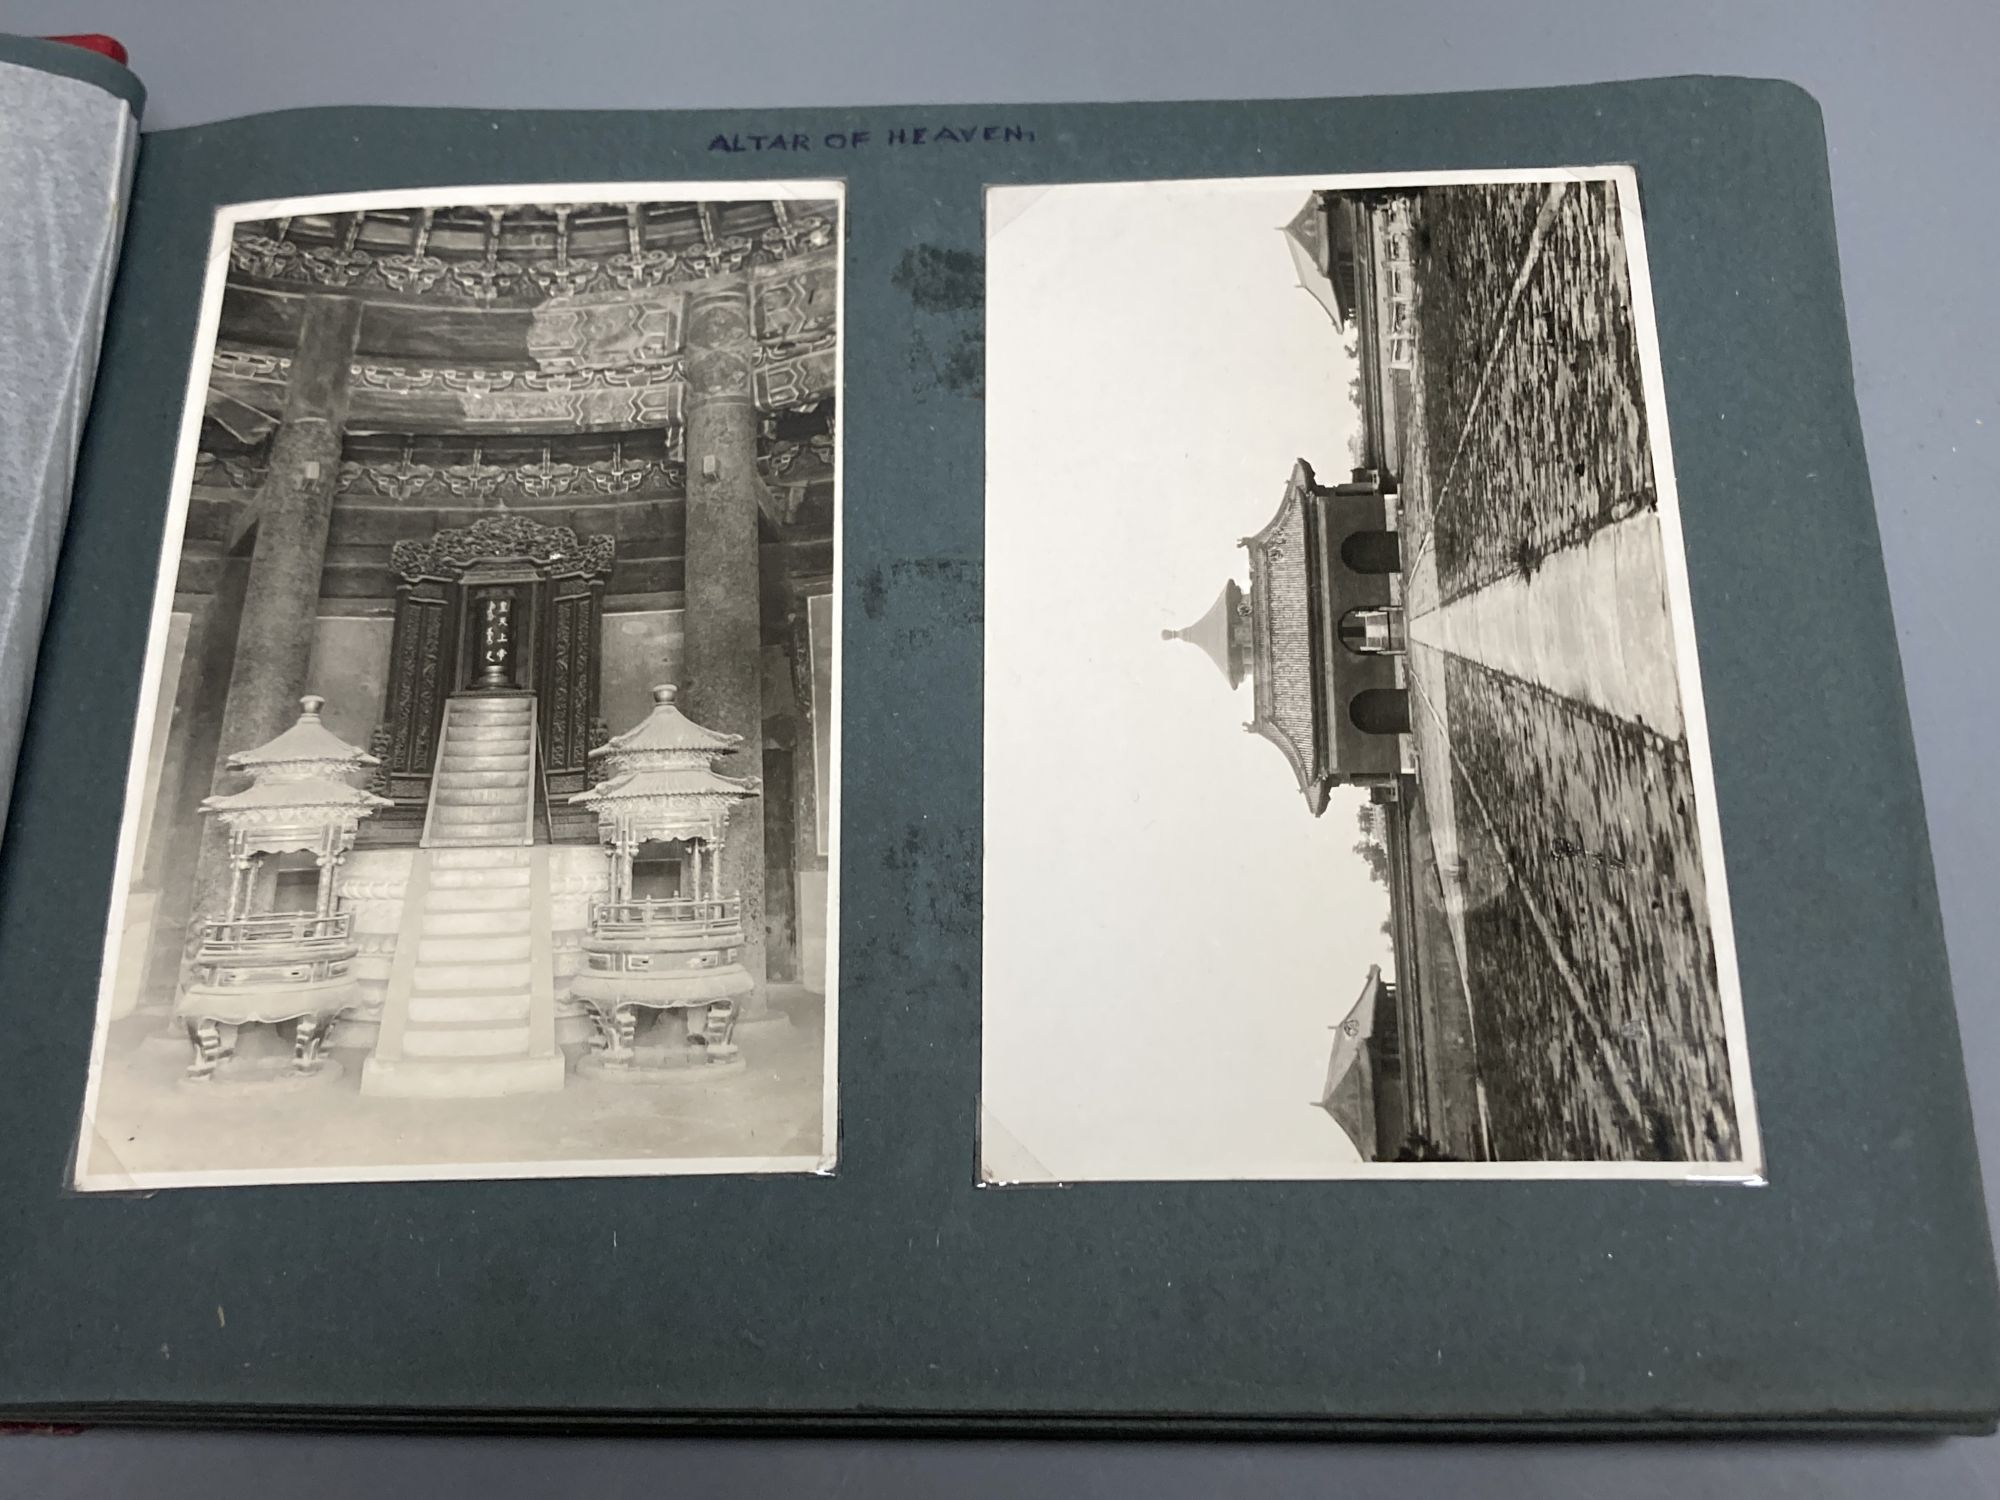 China, Japan and S.E Asia, early 20th century - an album of postcards, including views of the - Image 2 of 6